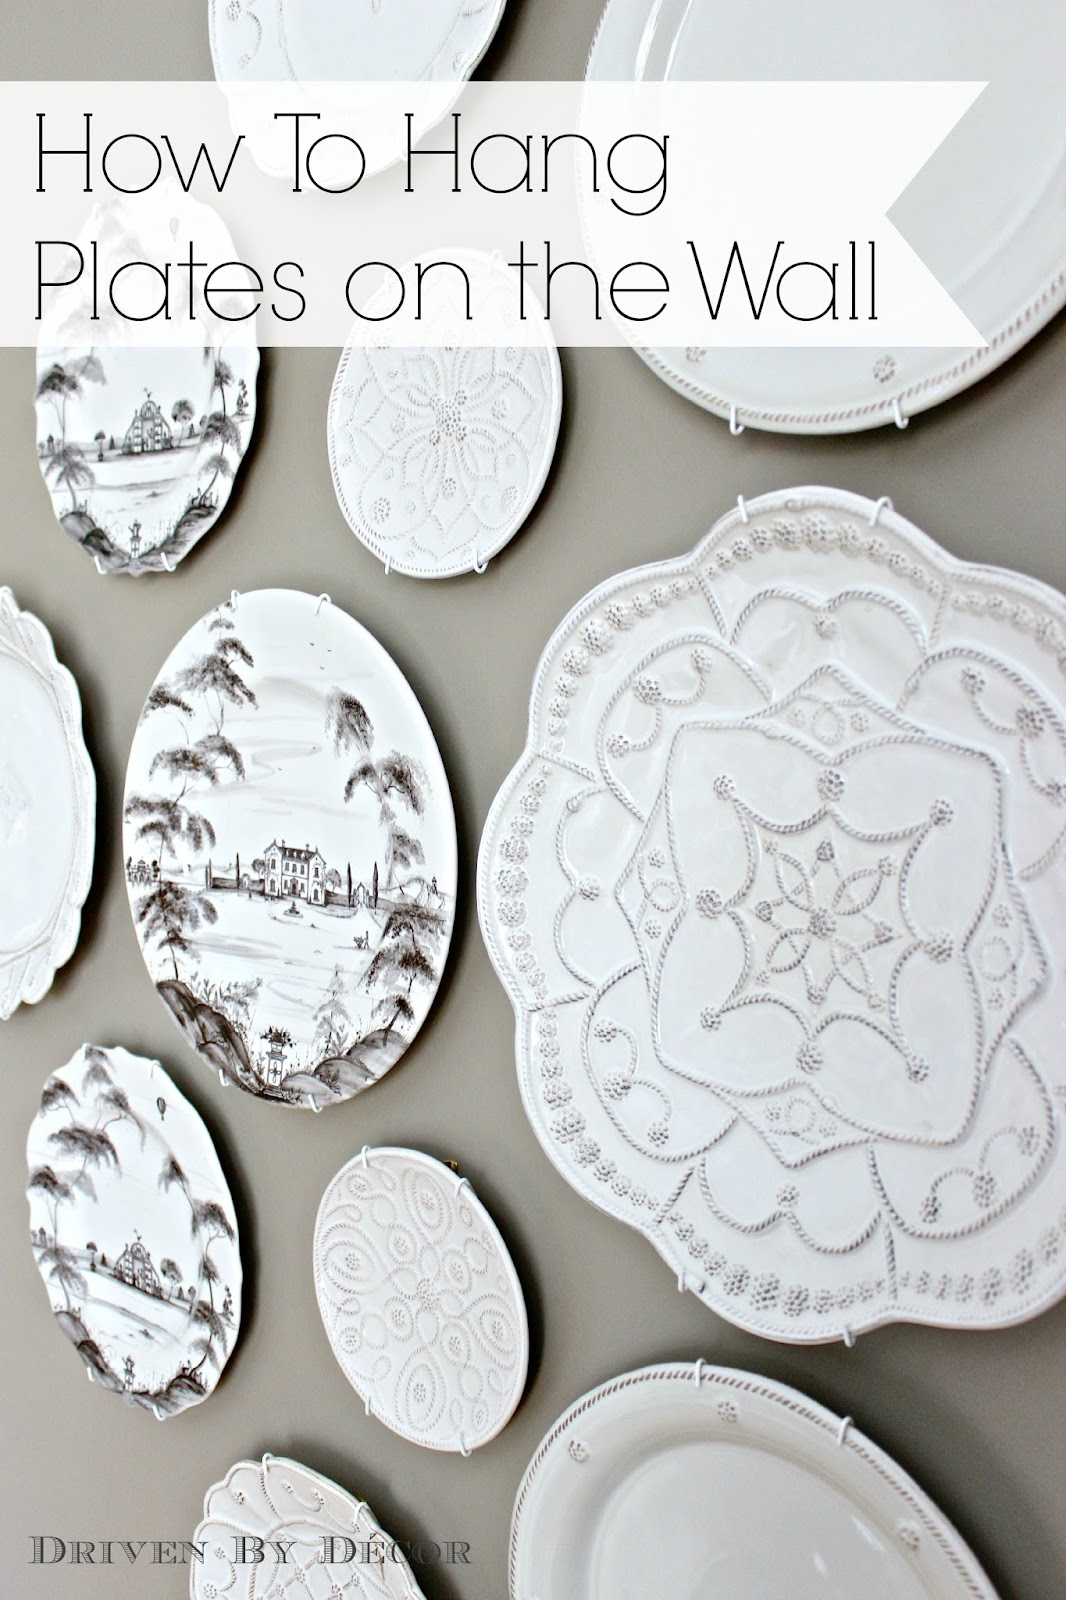 Captivating Step 1: Figure Out How You Want To Arrange Your Plates